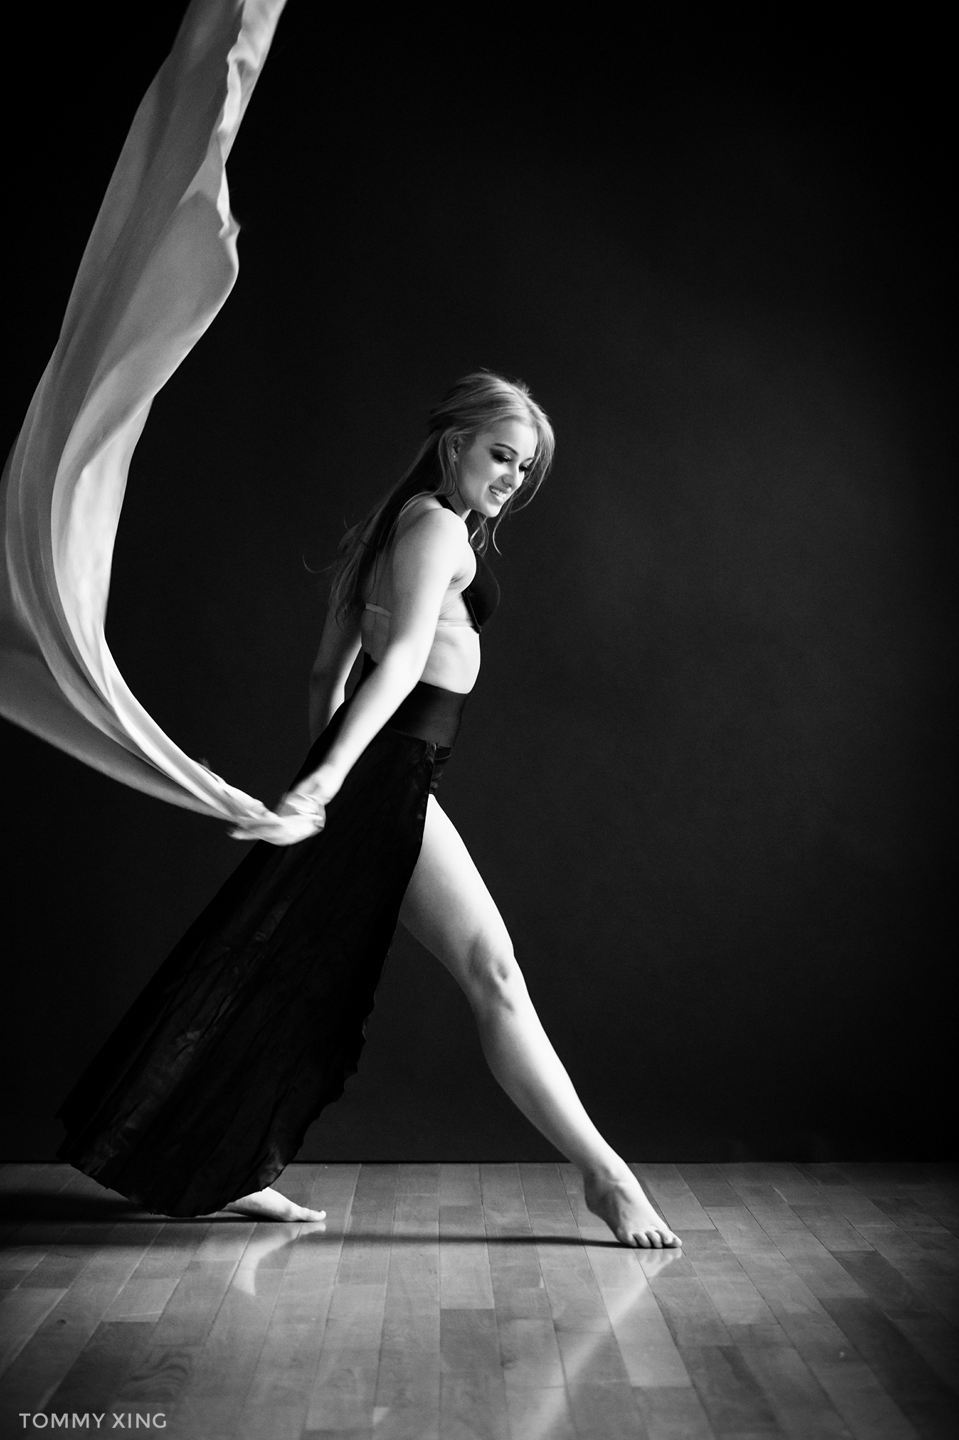 Los Angeles Dance photography - Haley - Tommy Xing07.JPG